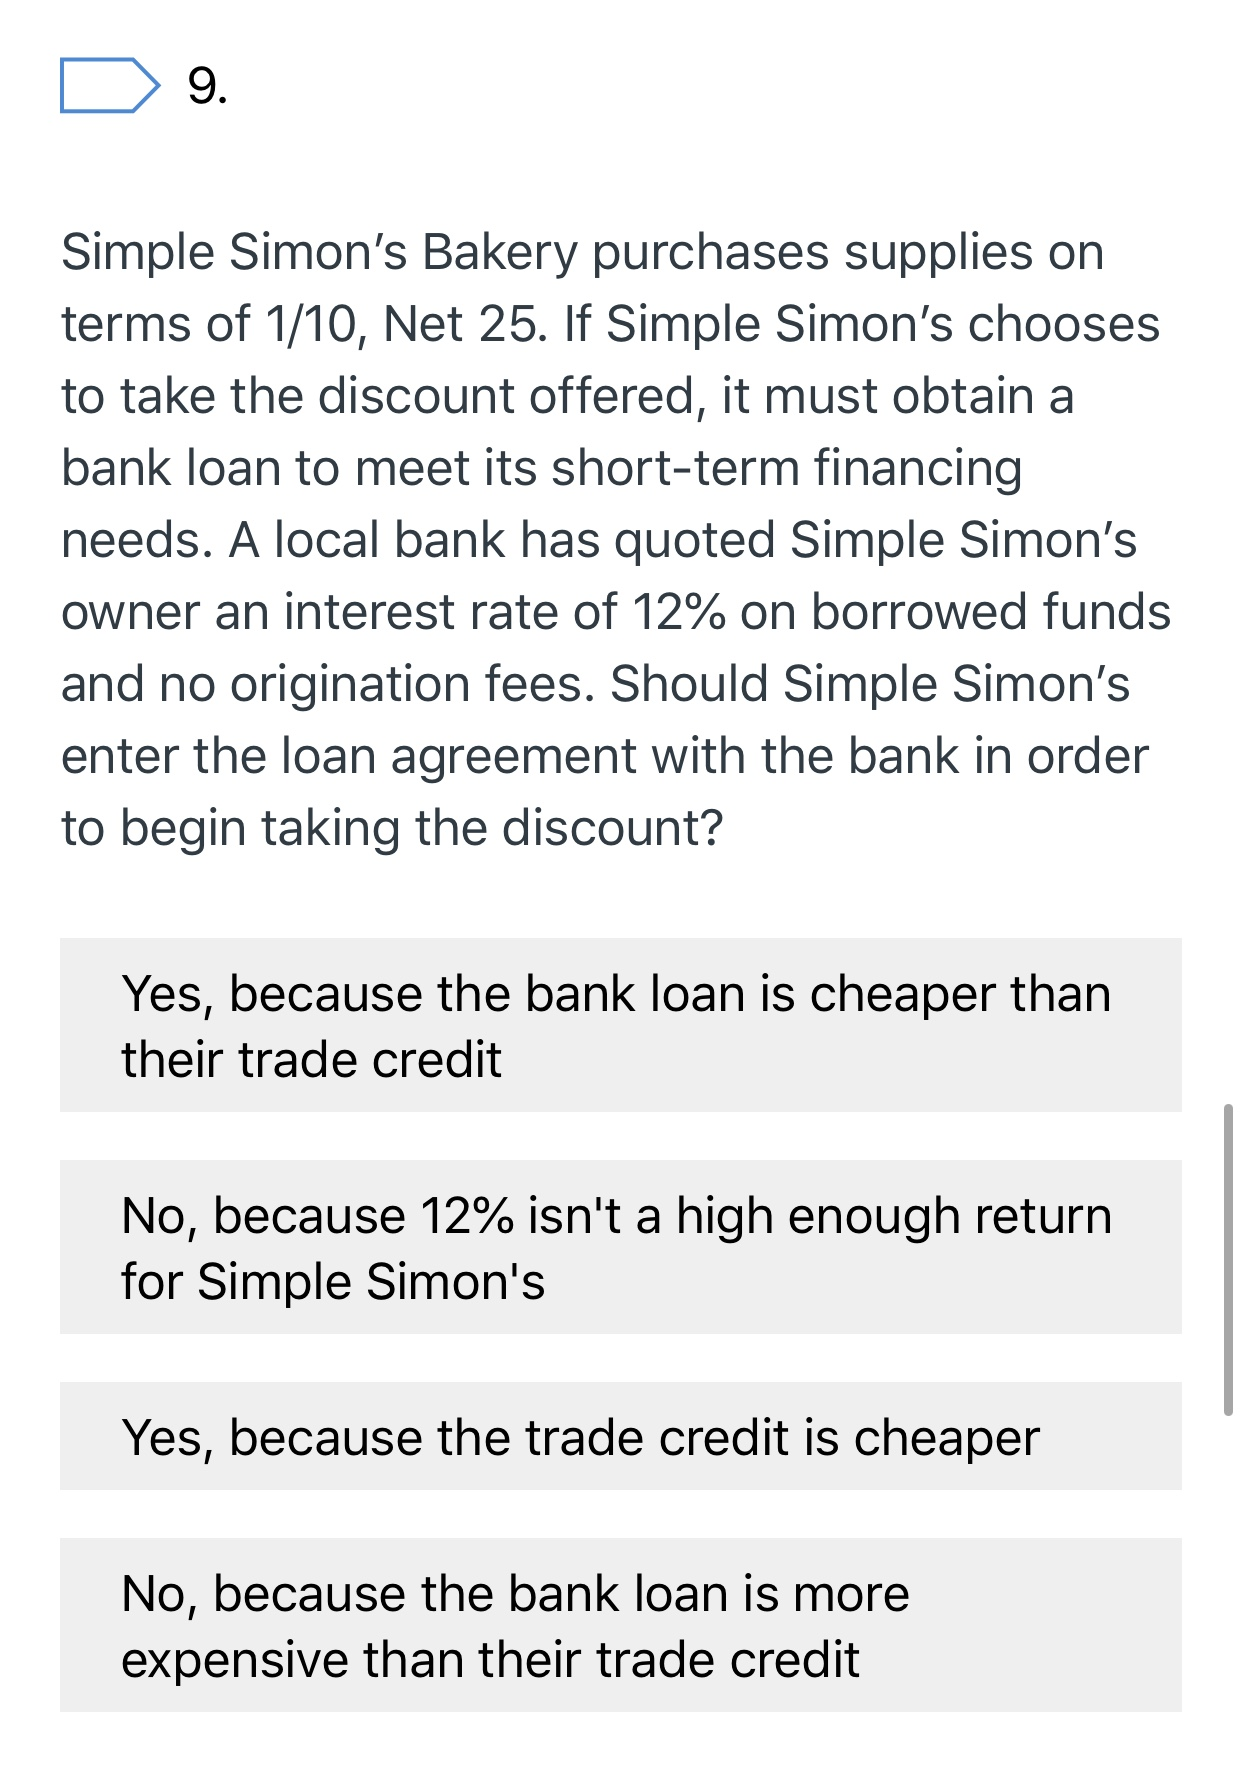 9. Simple Simon's Bakery purchases supplies on terms of 1/10, Net 25. If Simple Simon's chooses to take the discount offered, it must obtain a bank loan to meet its short-term financing needs. A local bank has quoted Simple Simon's owner an interest rate of 12% on borrowed funds and no origination fees. Should Simple Simon's enter the loan agreement with the bank in order to begin taking the discount? Yes, because the bank loan is cheaper than their trade credit No, because 12% isn't a high enough return for Simple Simon's Yes, because the trade credit is cheaper No, because the bank loan is more expensive than their trade credit